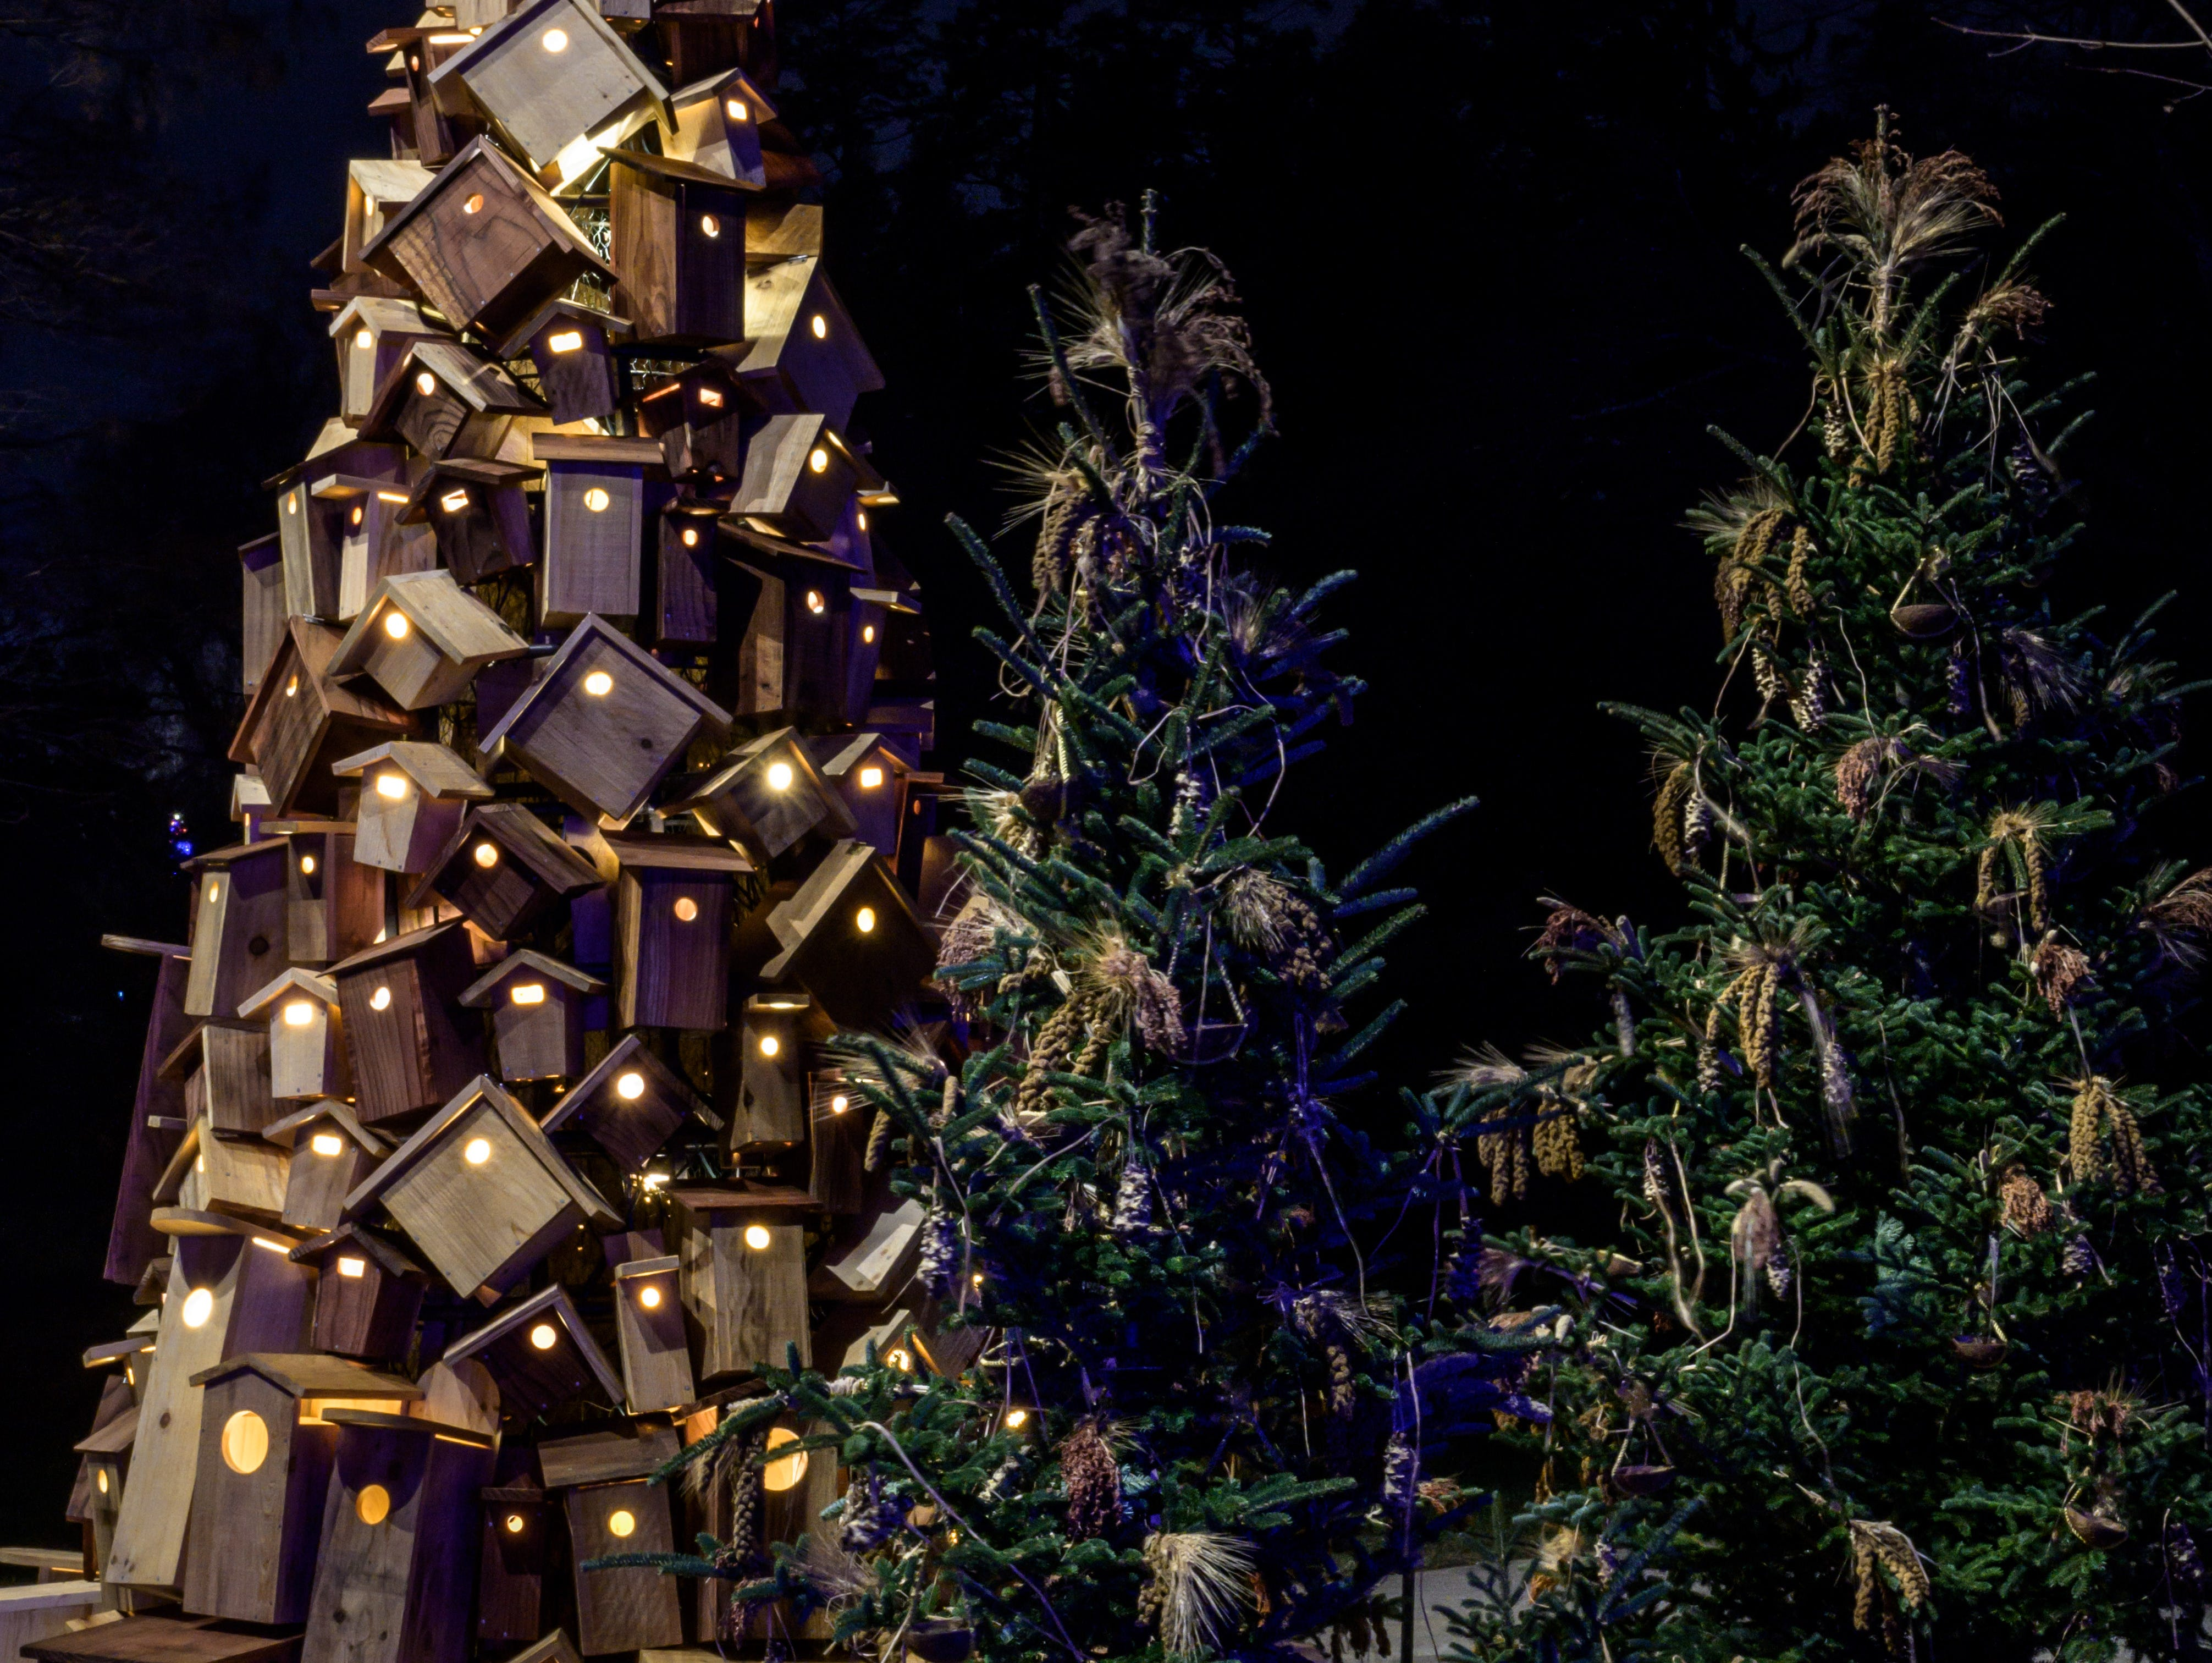 Longwood Gardens' popular Wildlife Tree is reinvented as a 13-foot conical tree covered in 200 handmade birdhouses.